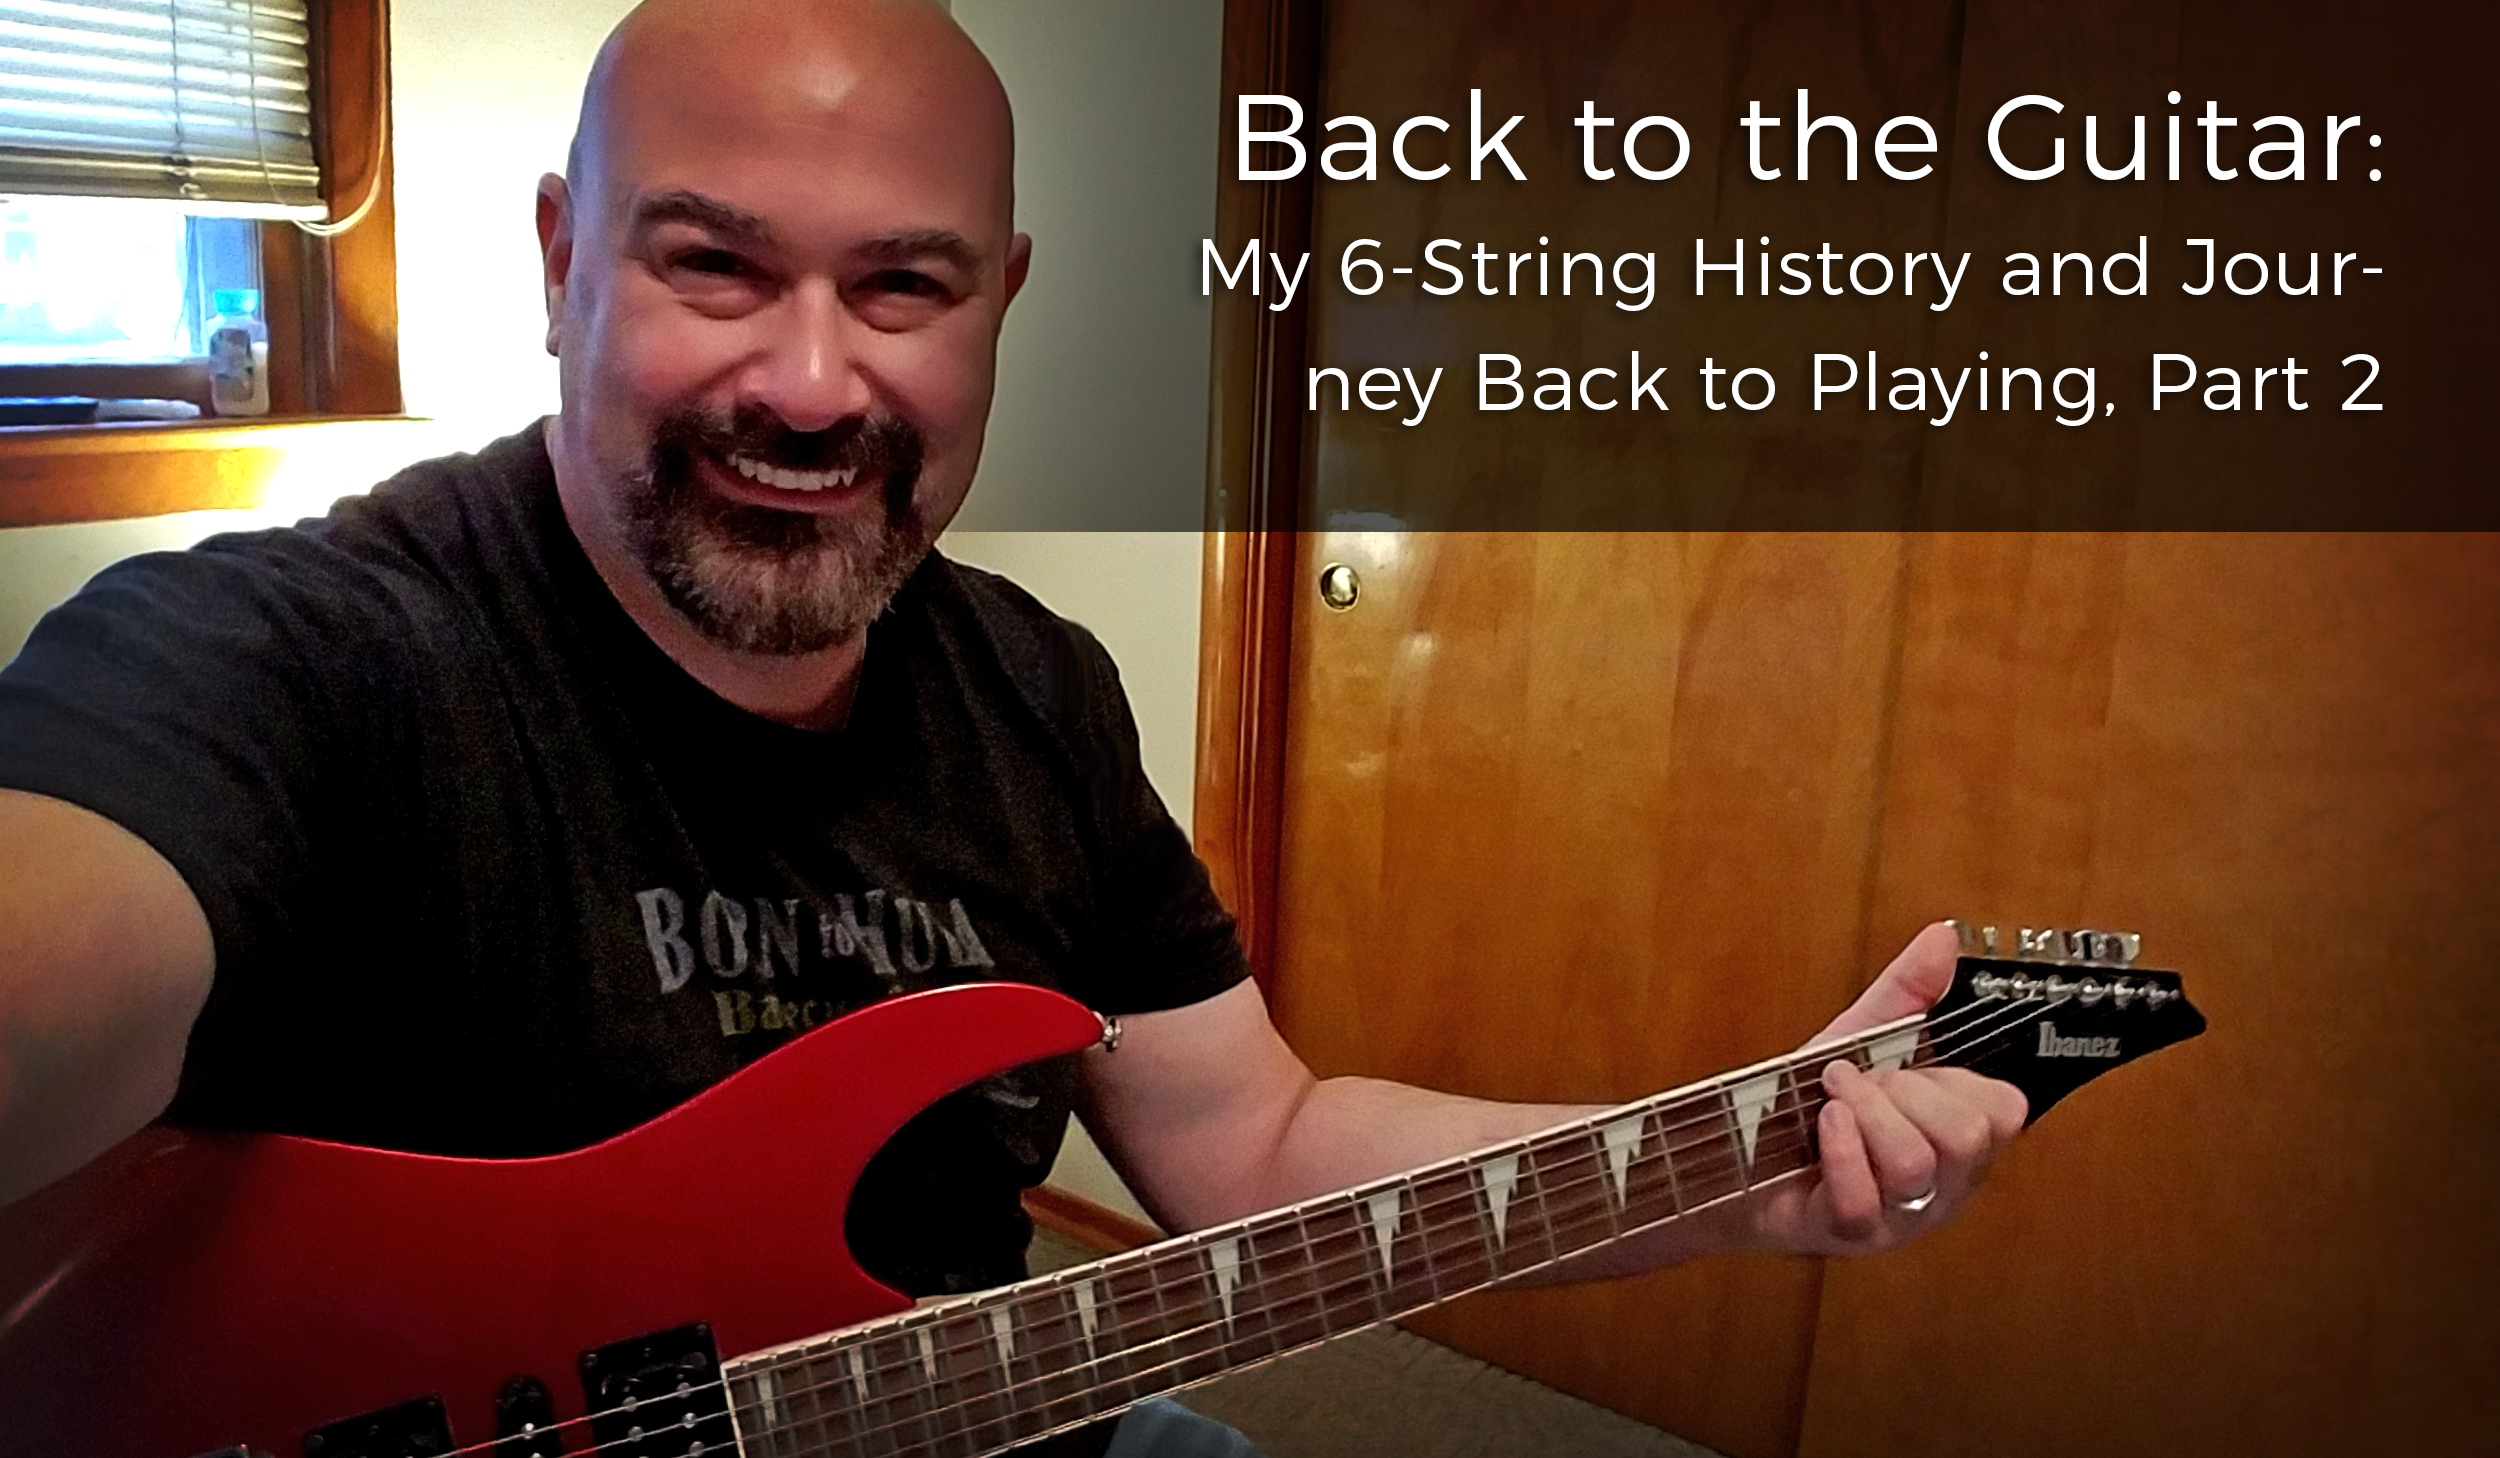 back-to-the-guitar-my-6-string-journey-back-to-playing-part-2-scott-roberts